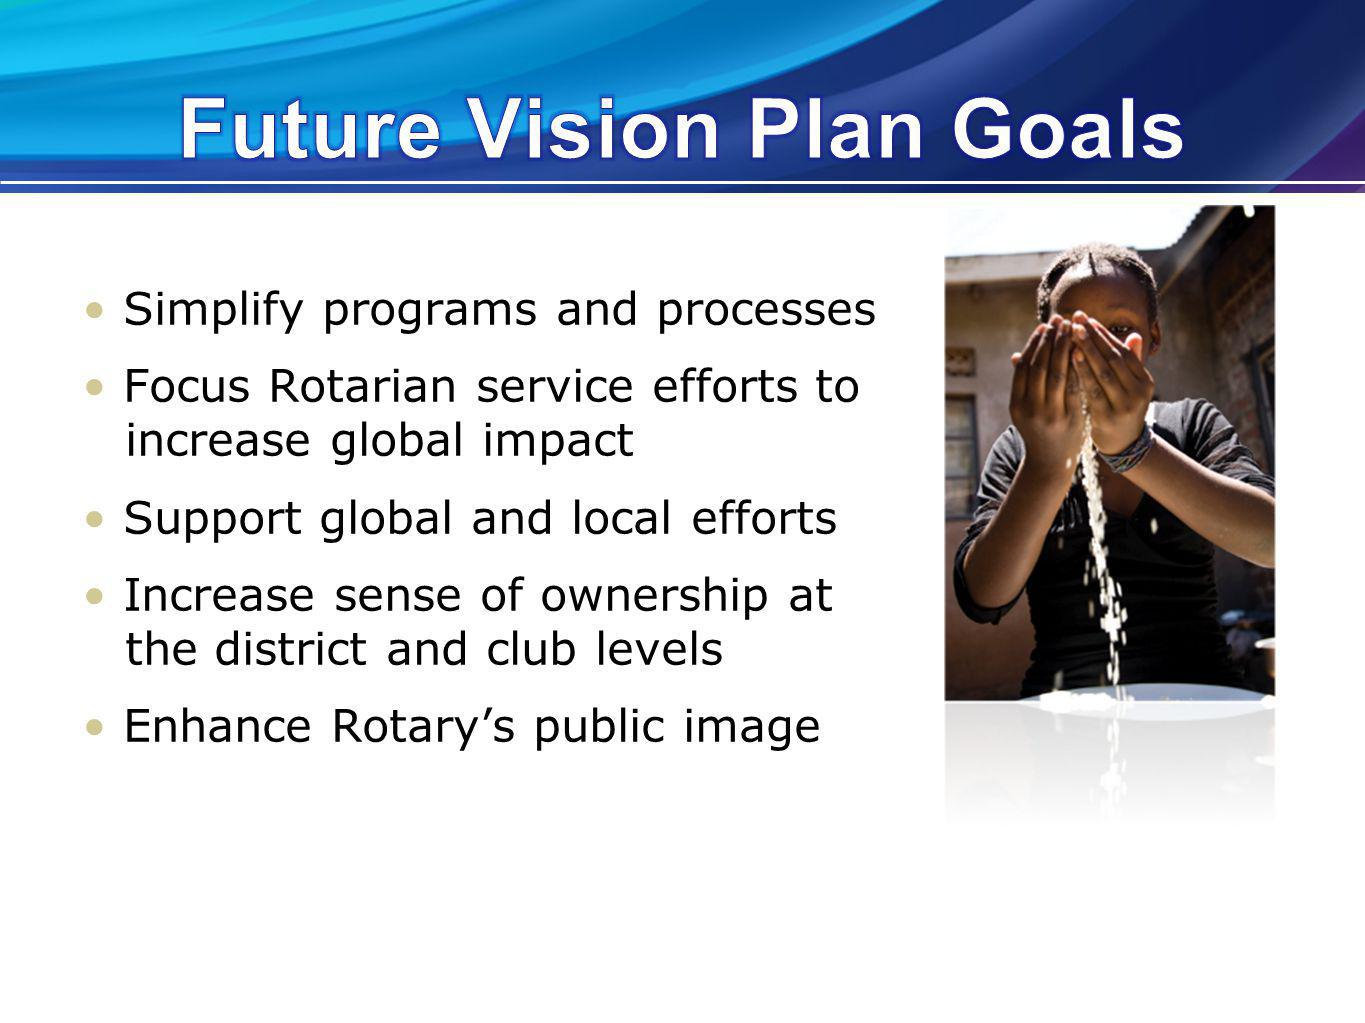 Simplify programs and processes Focus Rotarian service efforts to increase global impact Support global and local efforts Increase sense of ownership at the district and club levels Enhance Rotarys public image